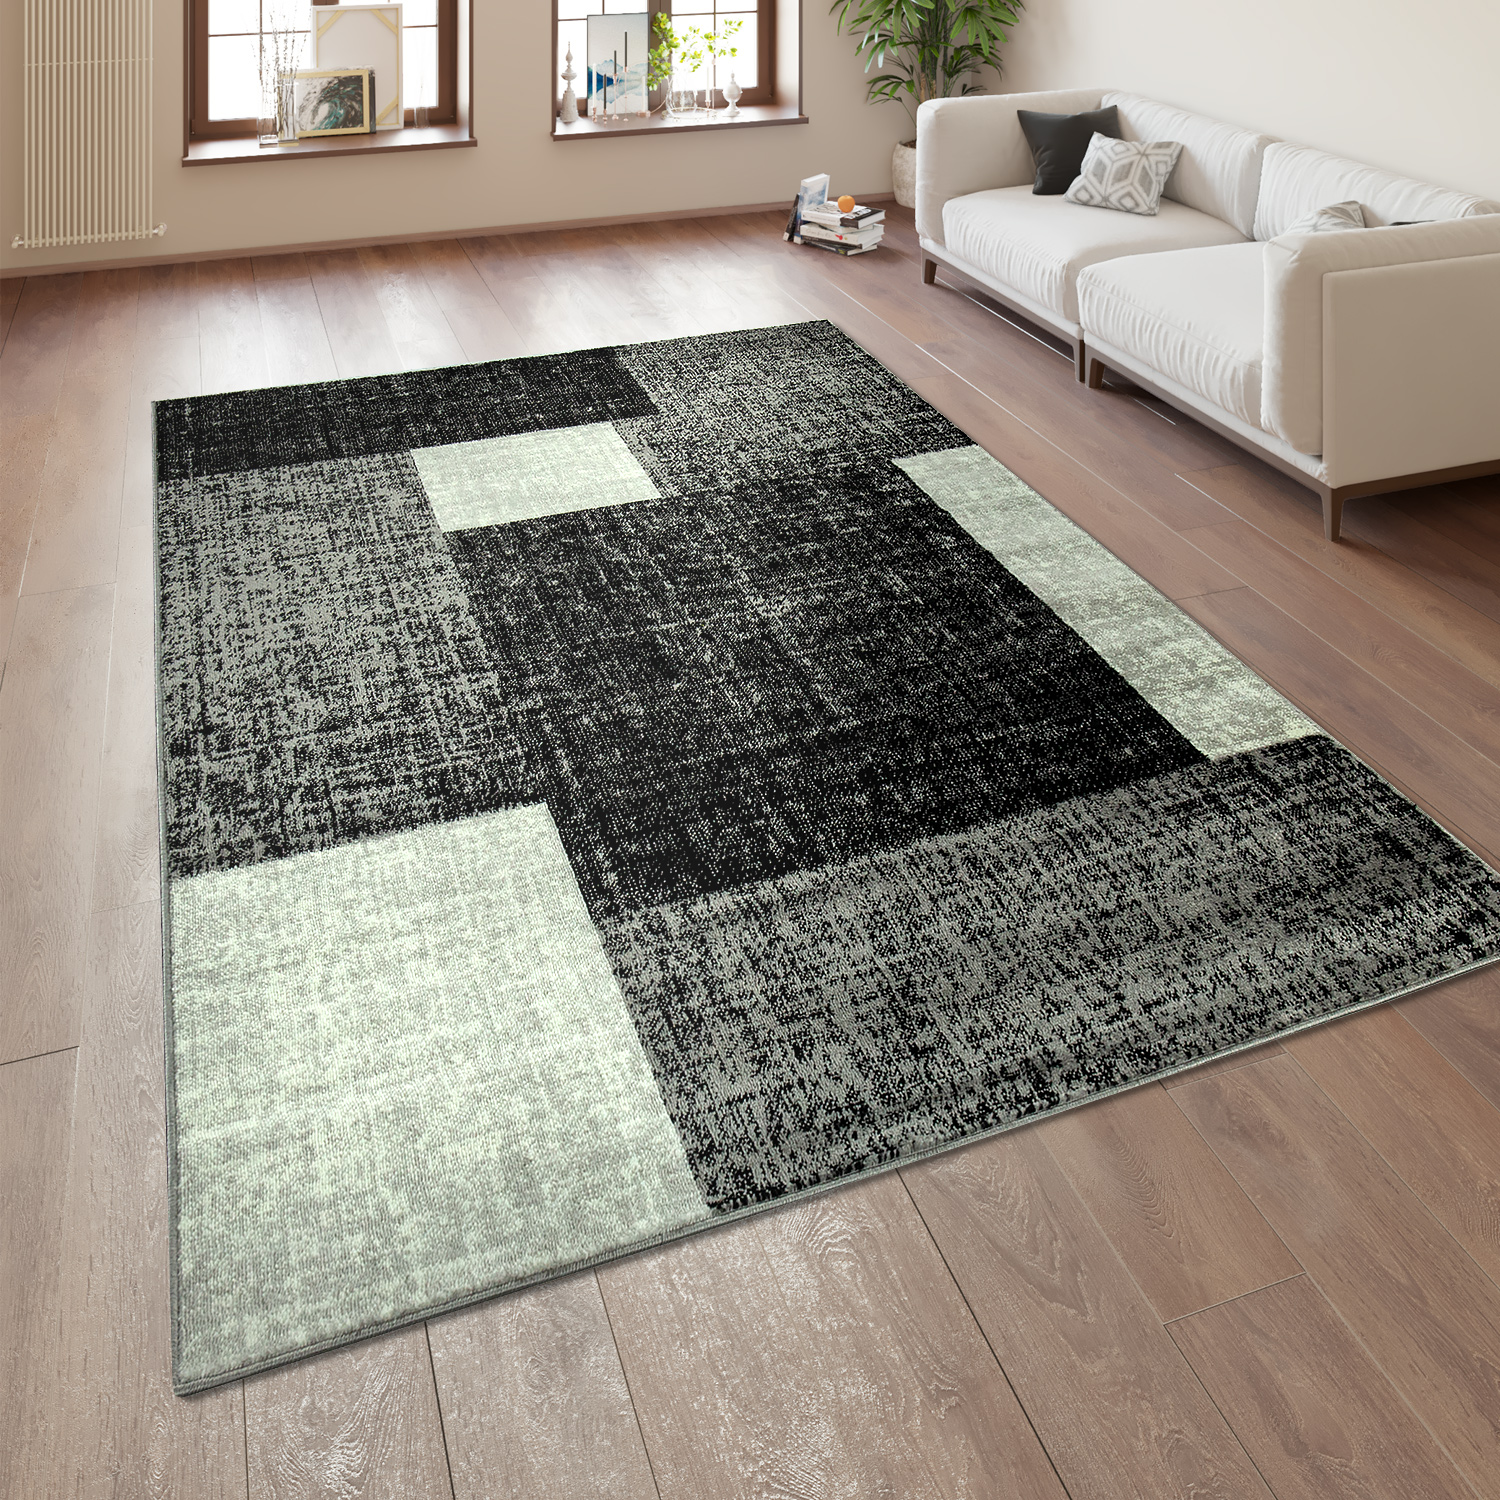 Checked Black Grey Rug: Designer Rug Checked Pattern Grey White